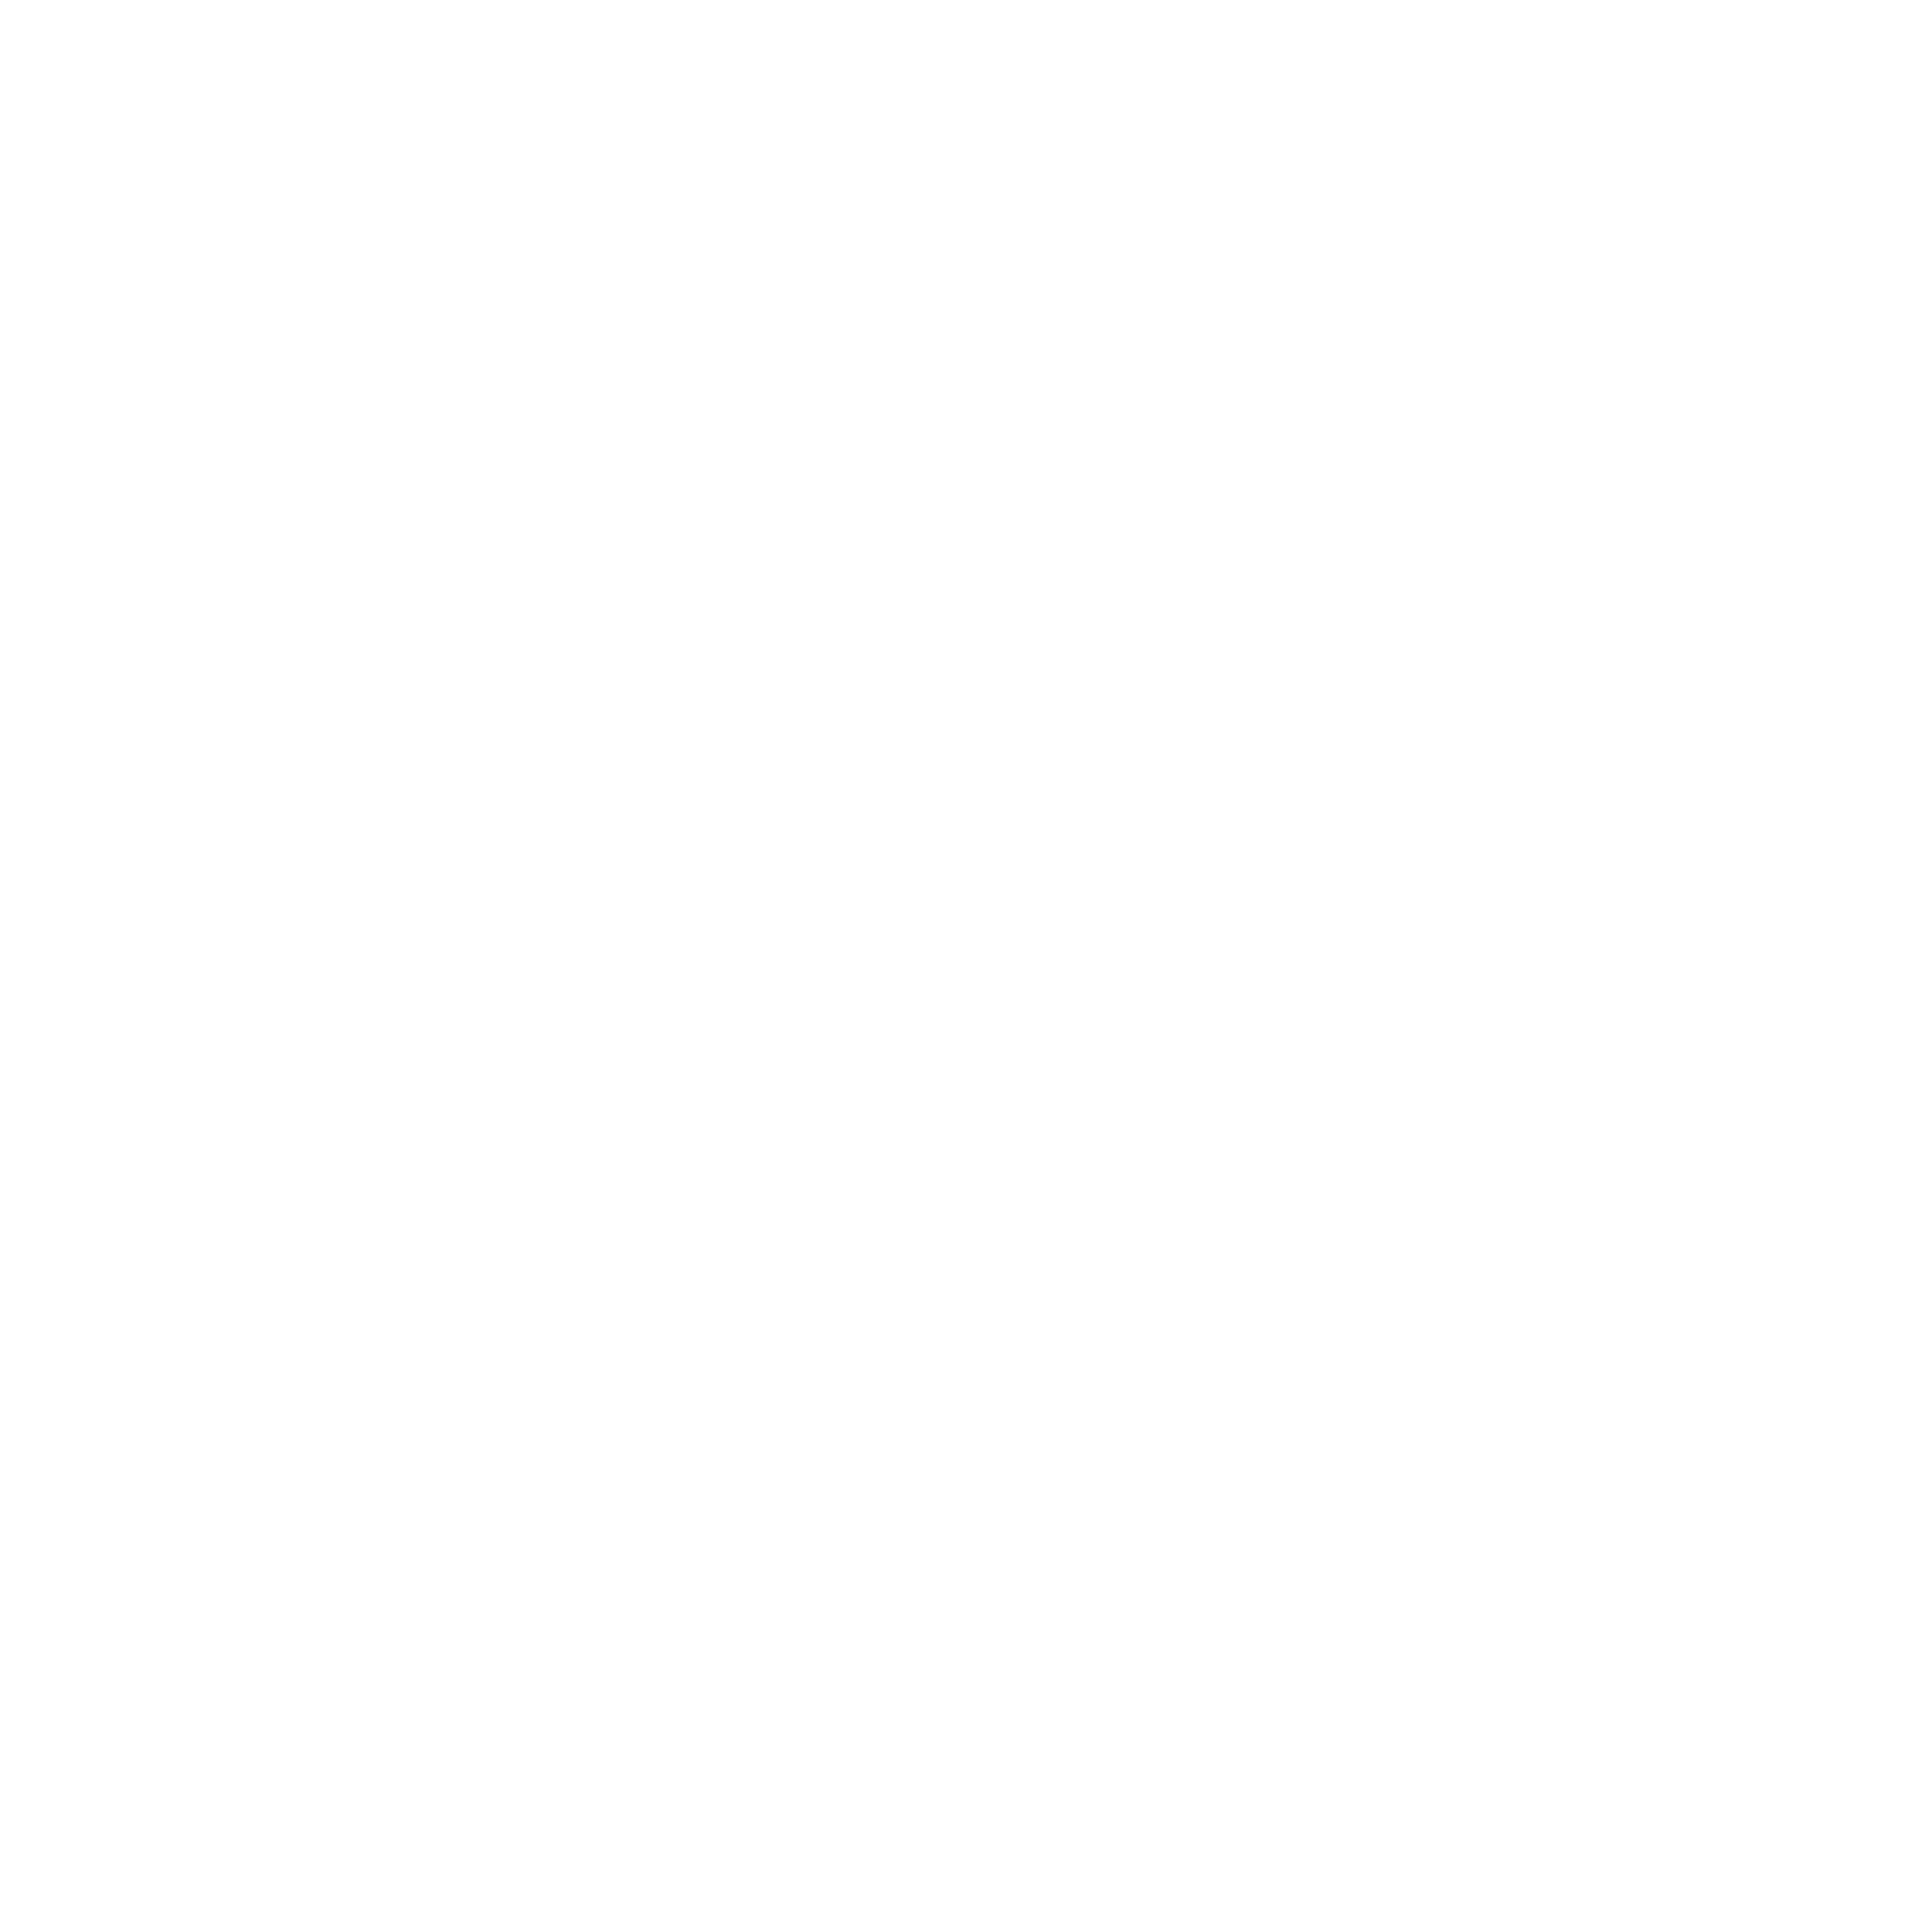 A venn diagram showing the three pillars of marketing. Brand Persona, Customer Persona, and Design.